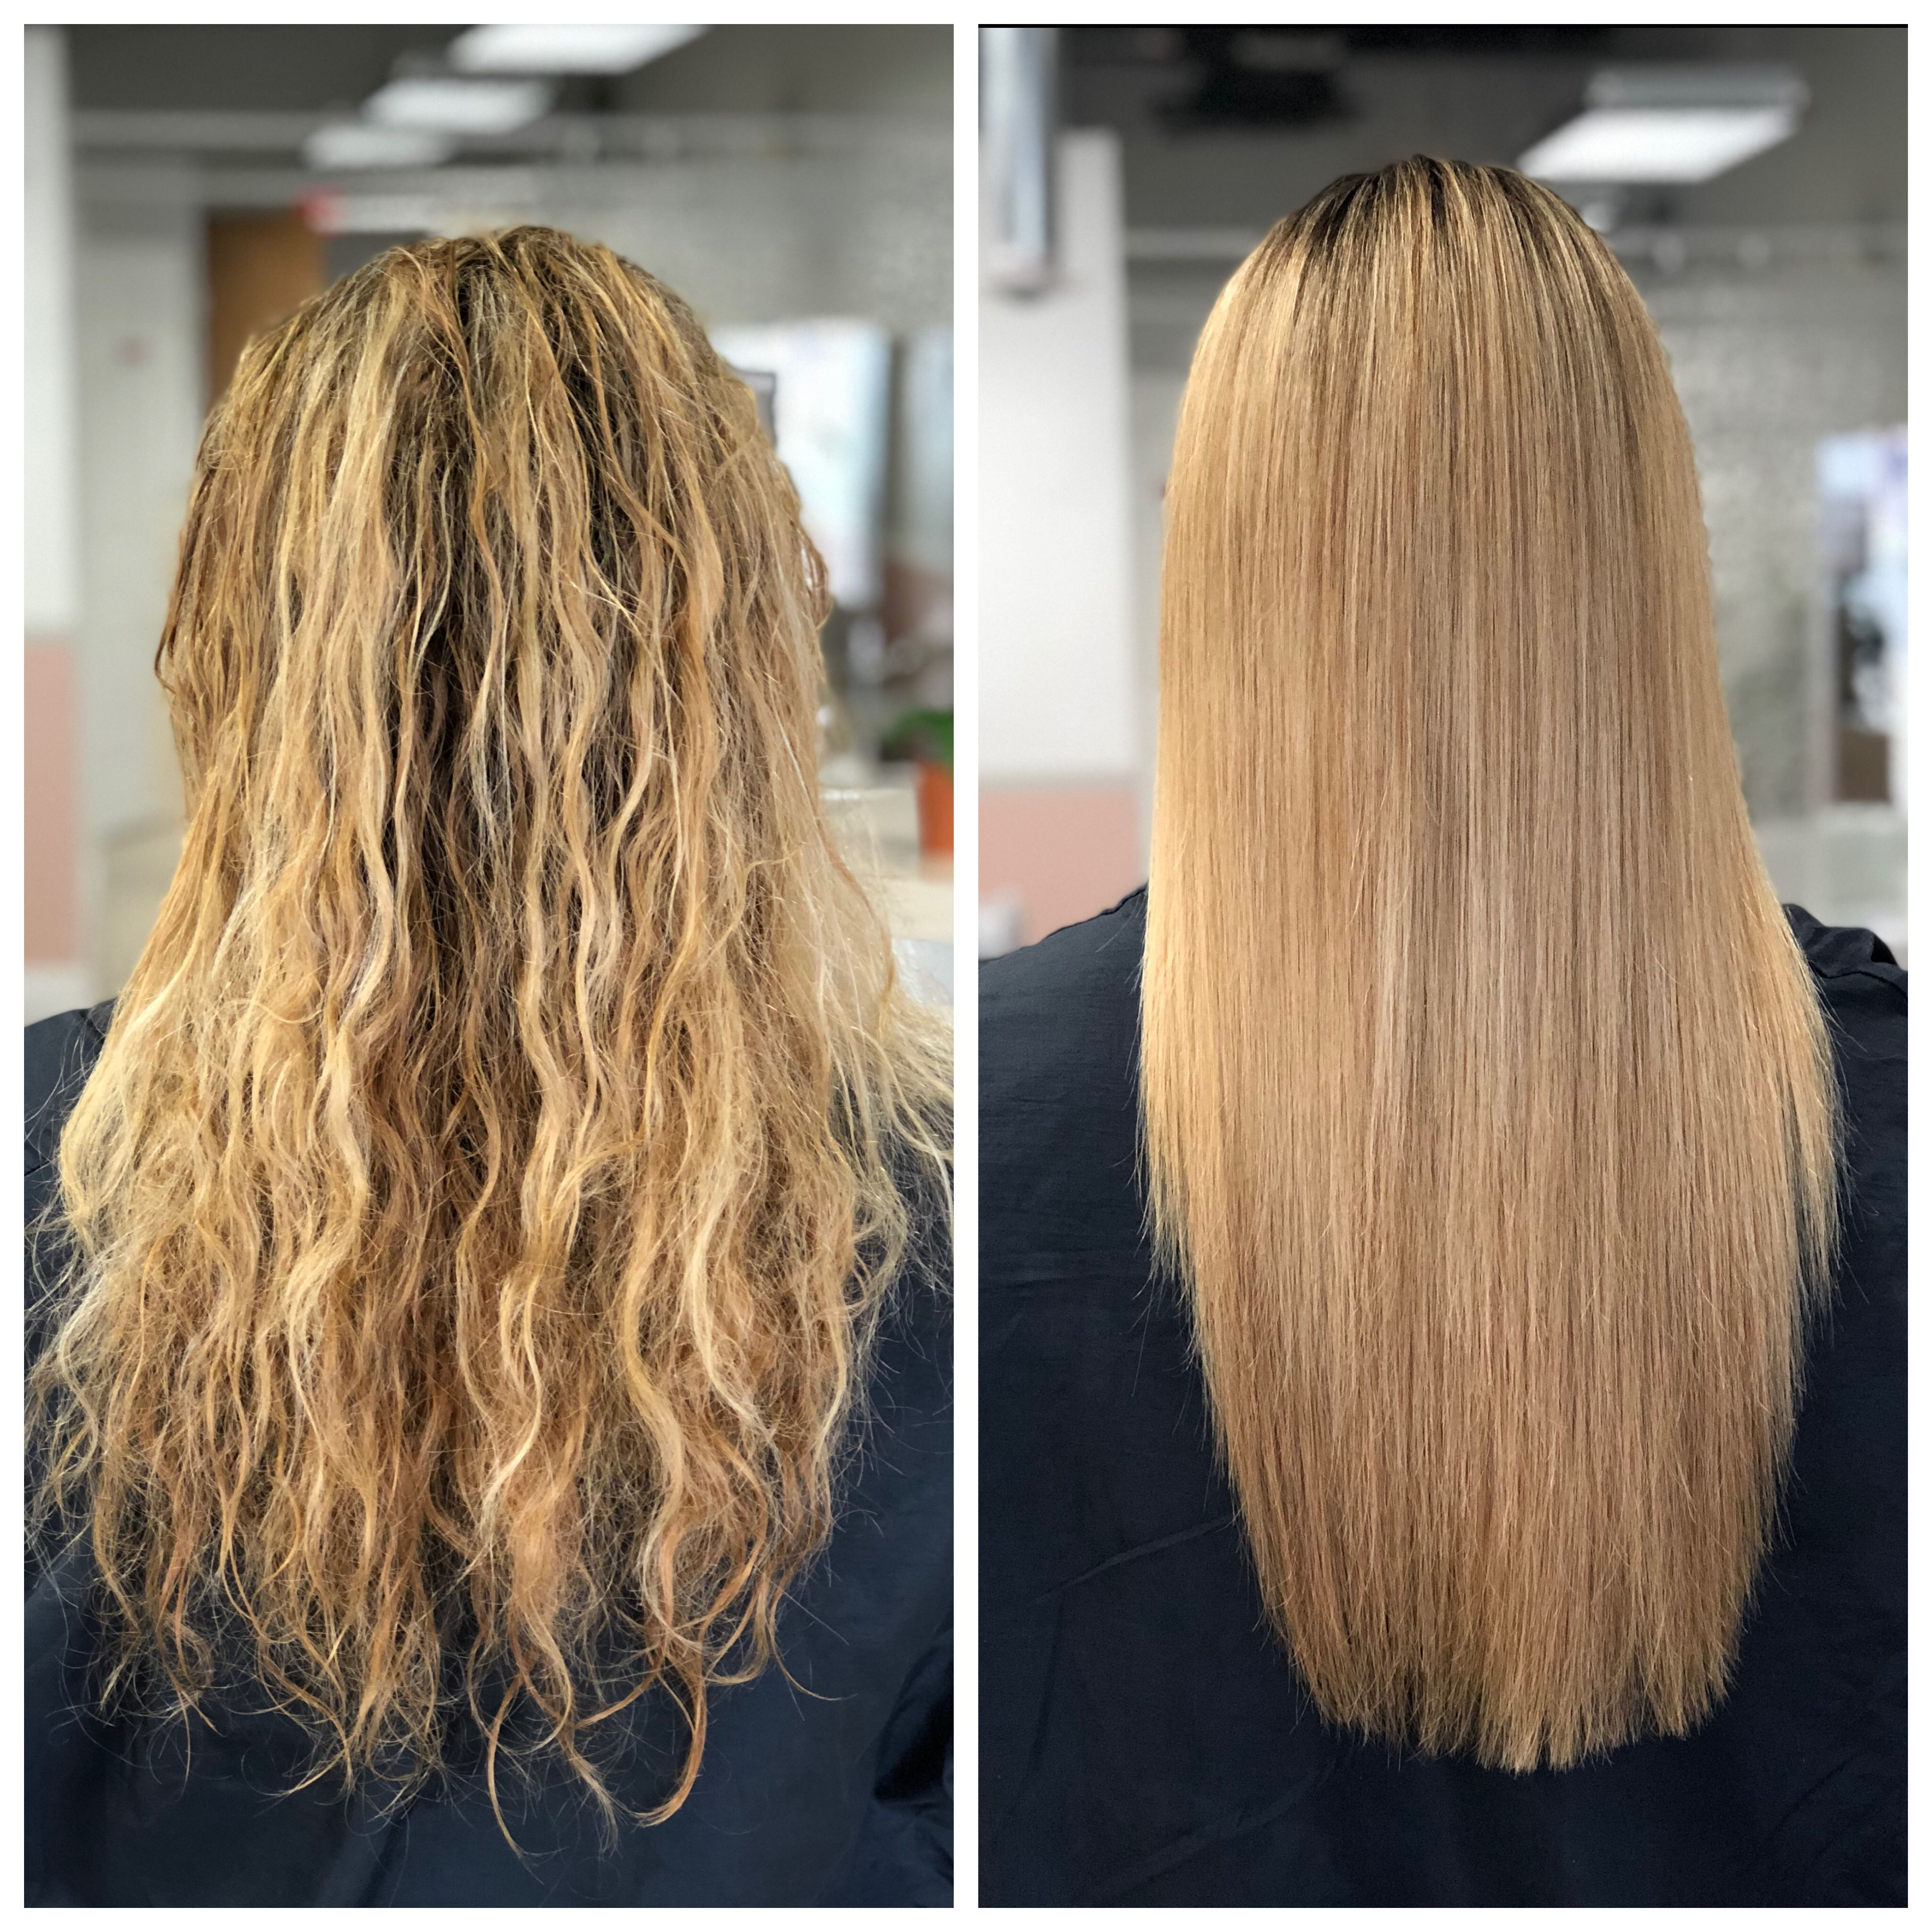 47+ Brazilian keratin treatment before and after pictures ideas in 2021